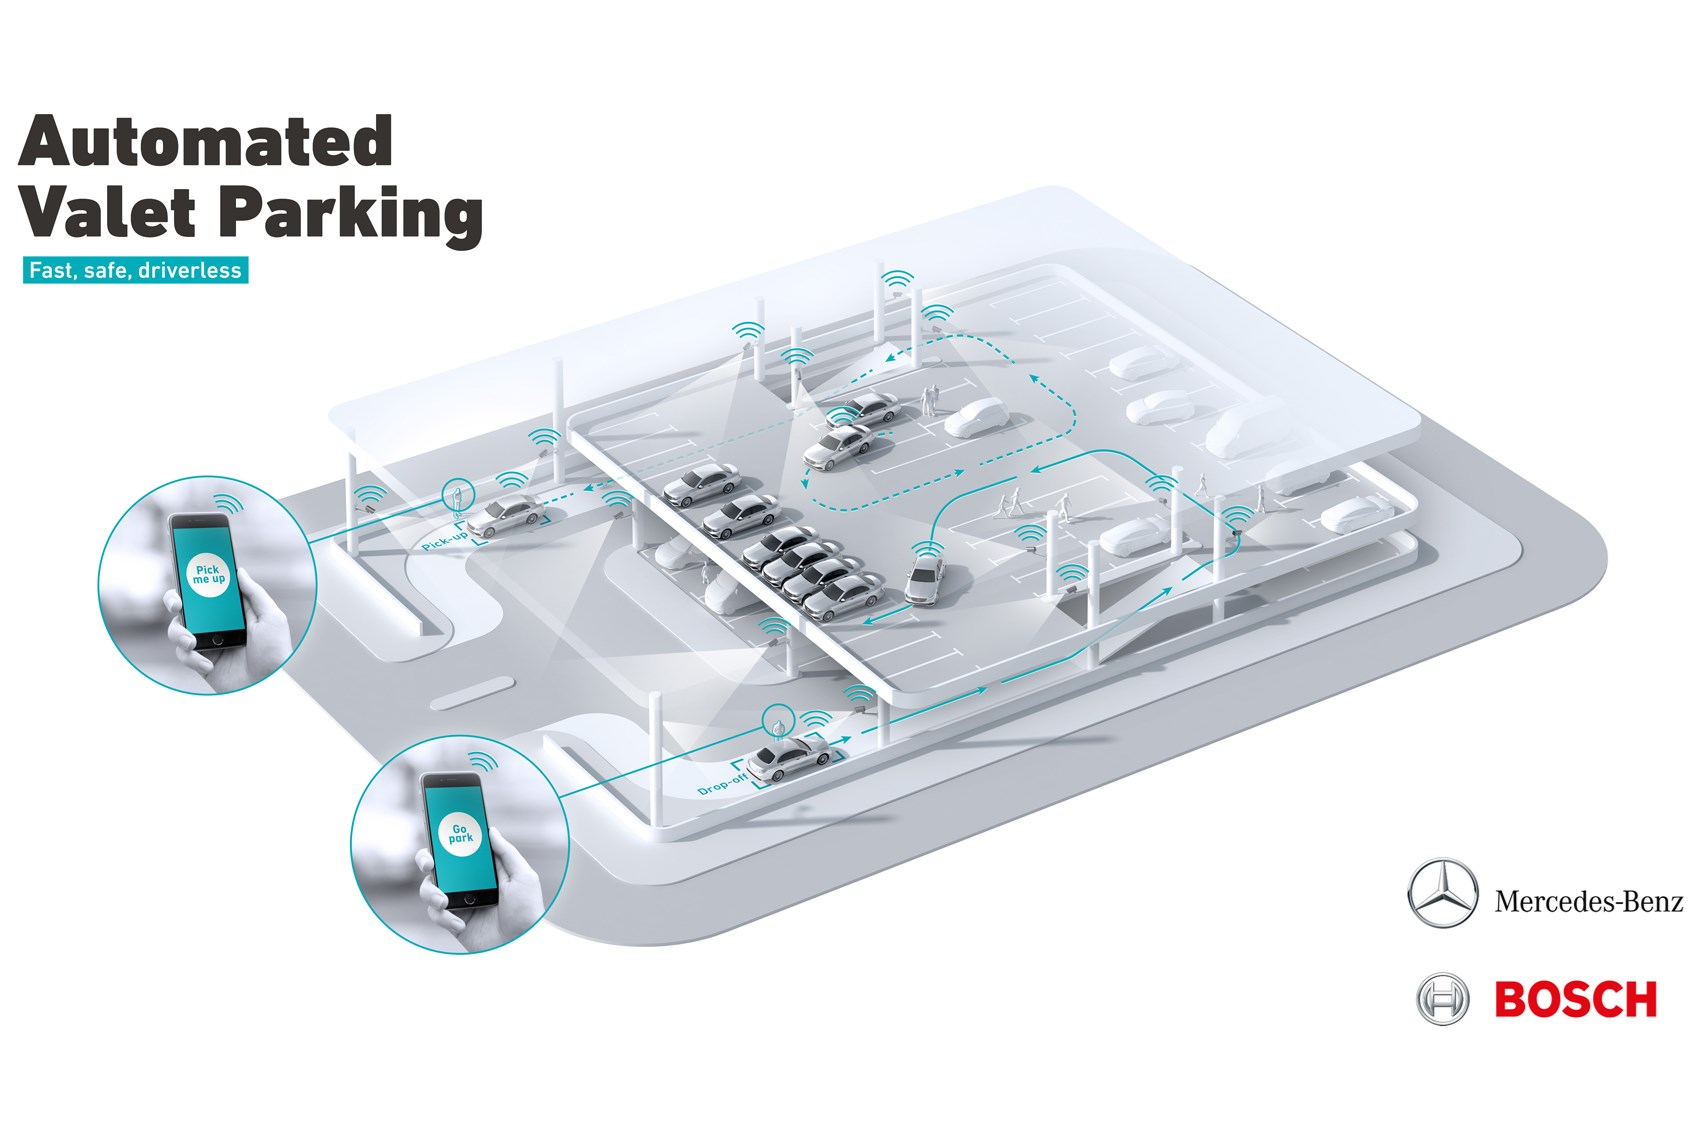 Bosch And Daimler Demonstrate Autonomous Valet Parking Service By Car Magazine